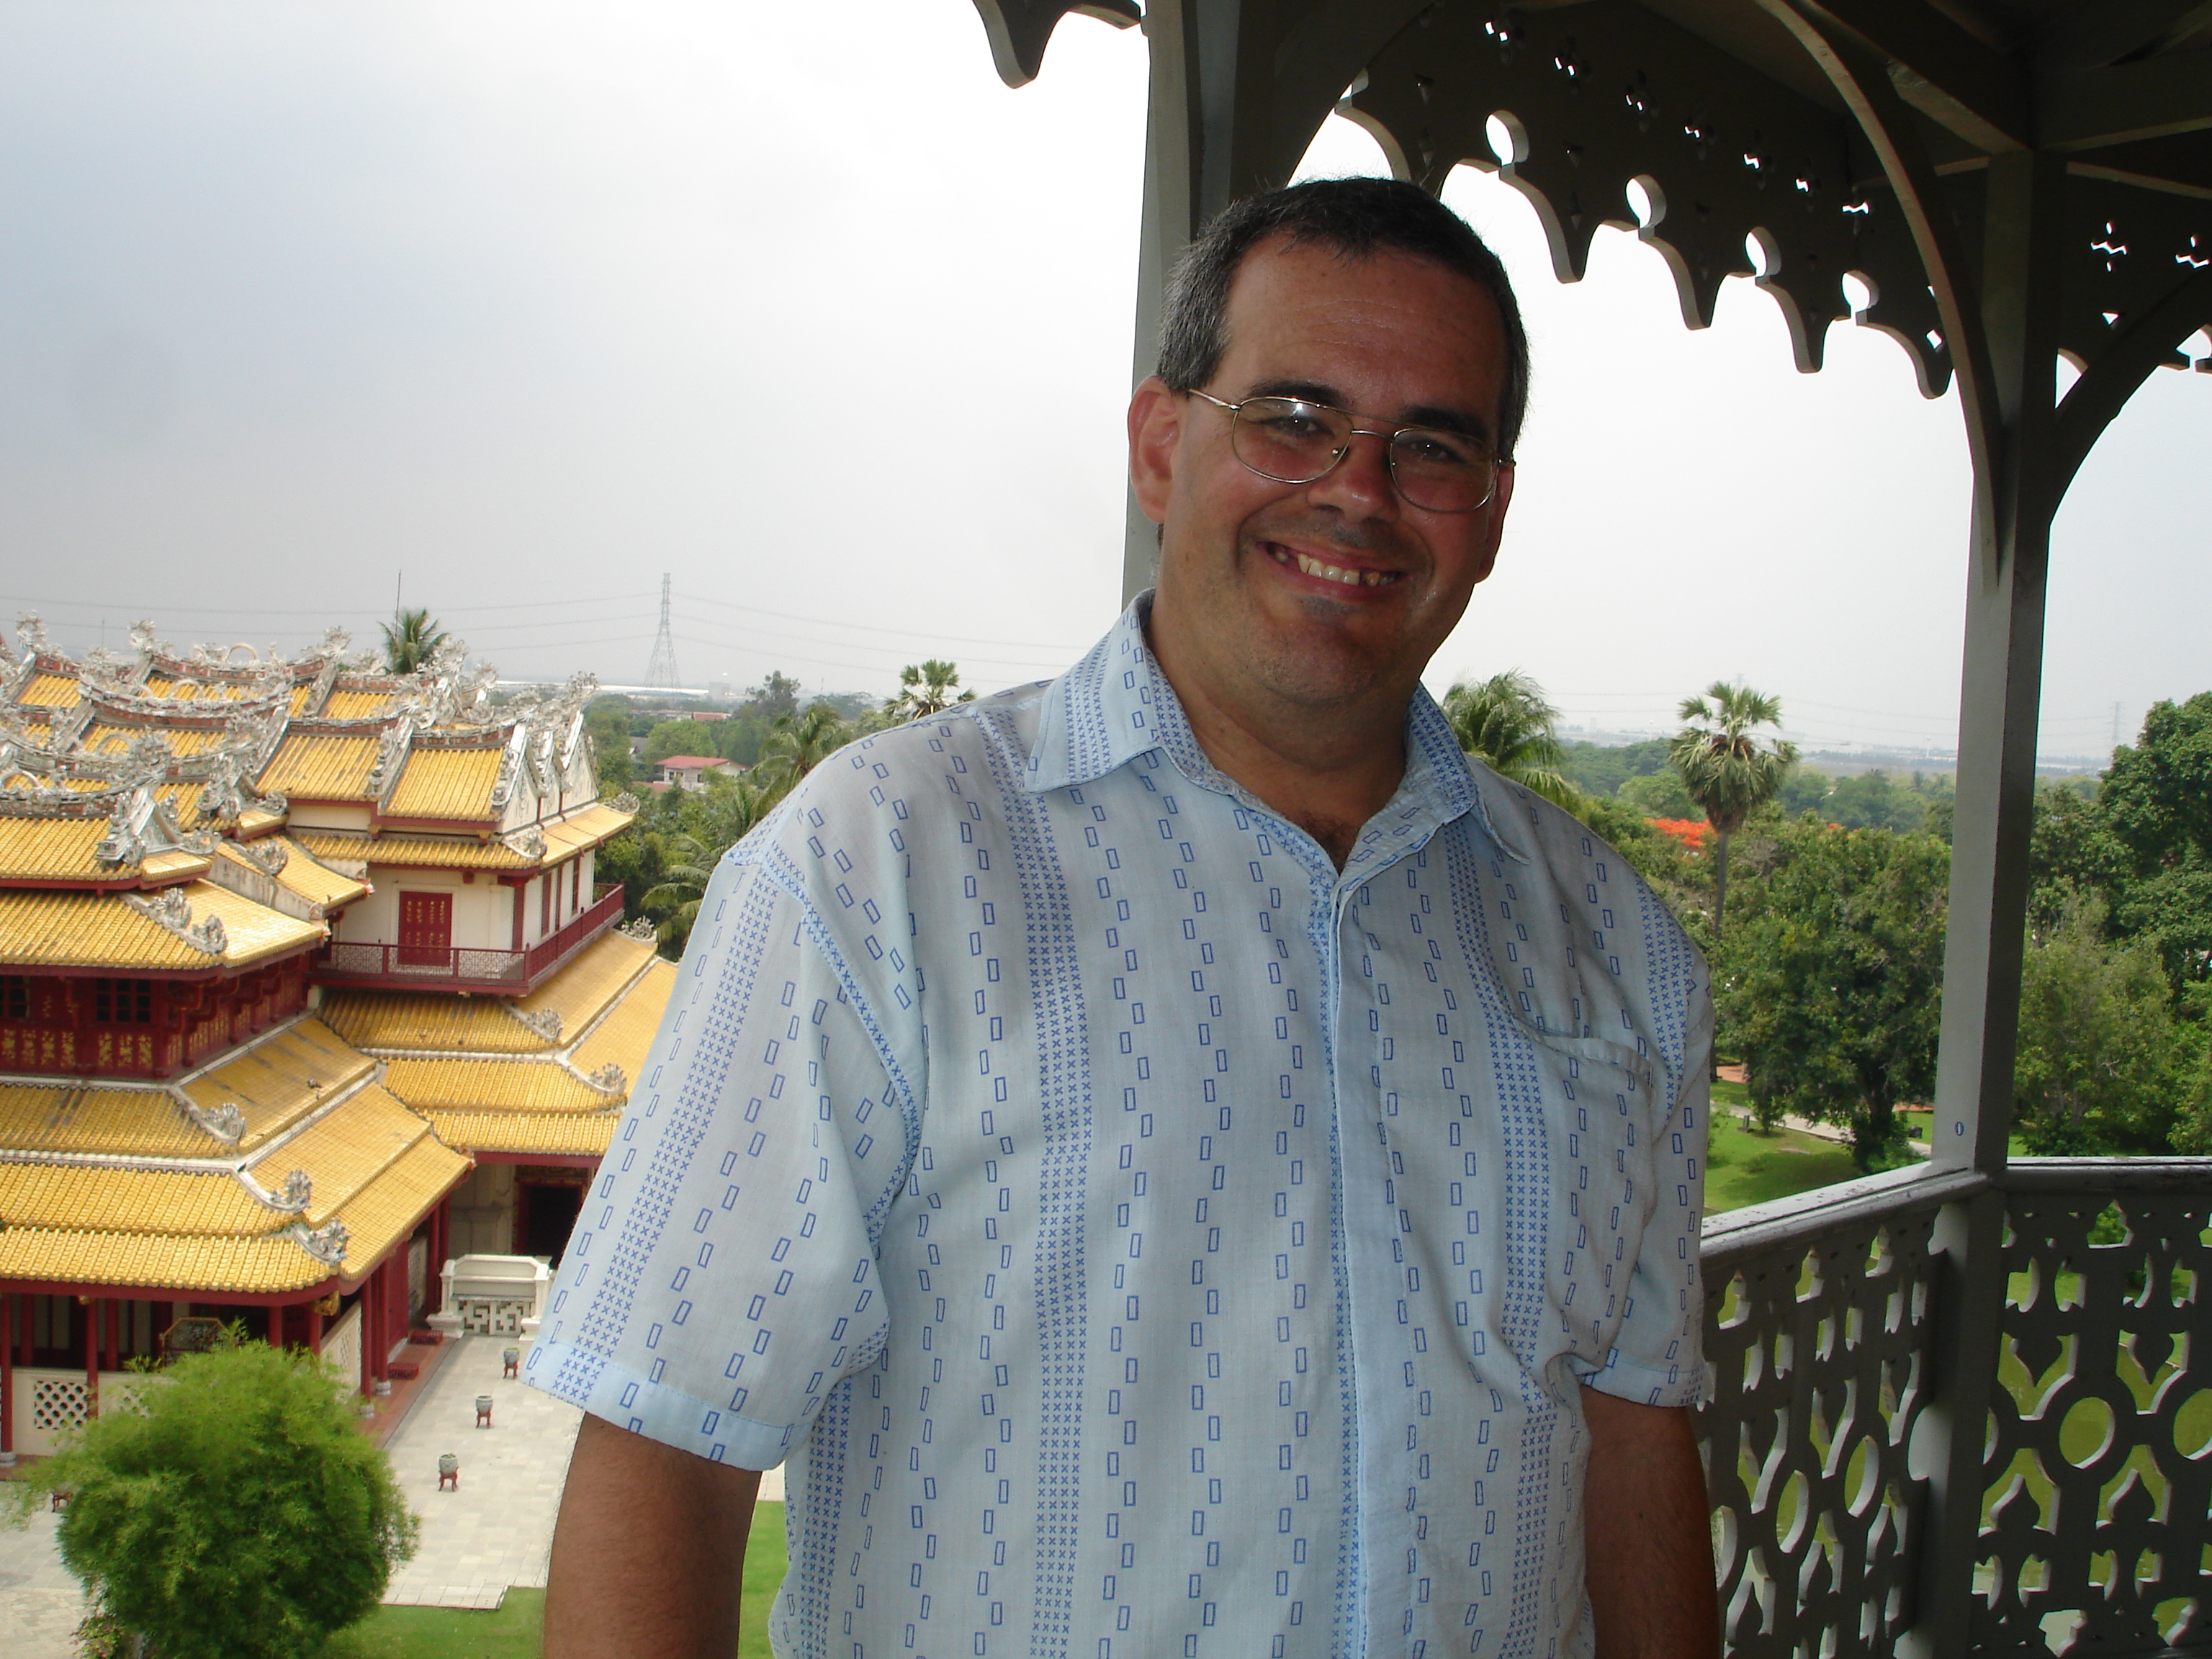 Mark Jochim (me!) in the Sages' Lookout at Bang Pa-In Royal Palace. Photo taken by either my ex-wife or former step-daughter on May 16, 2006.